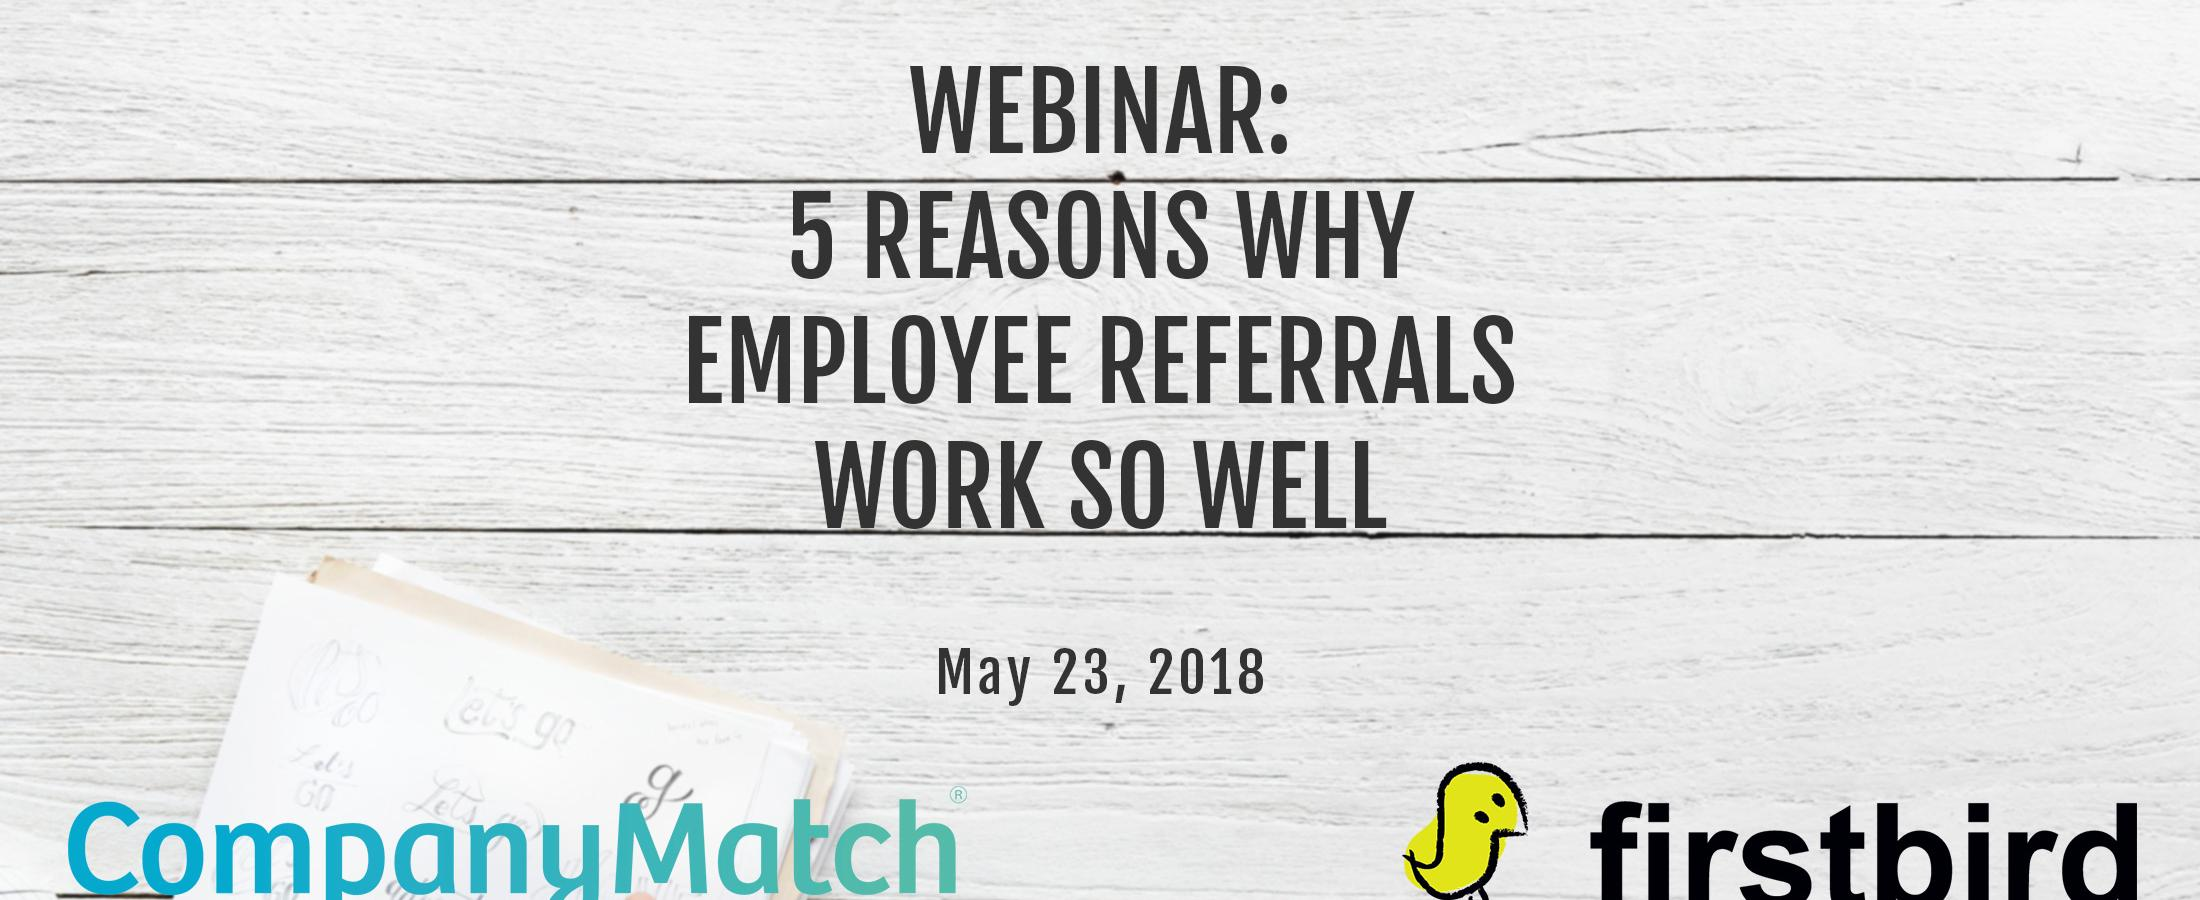 5 Reasons Why Employee Referrals Work So Well [Webinar]